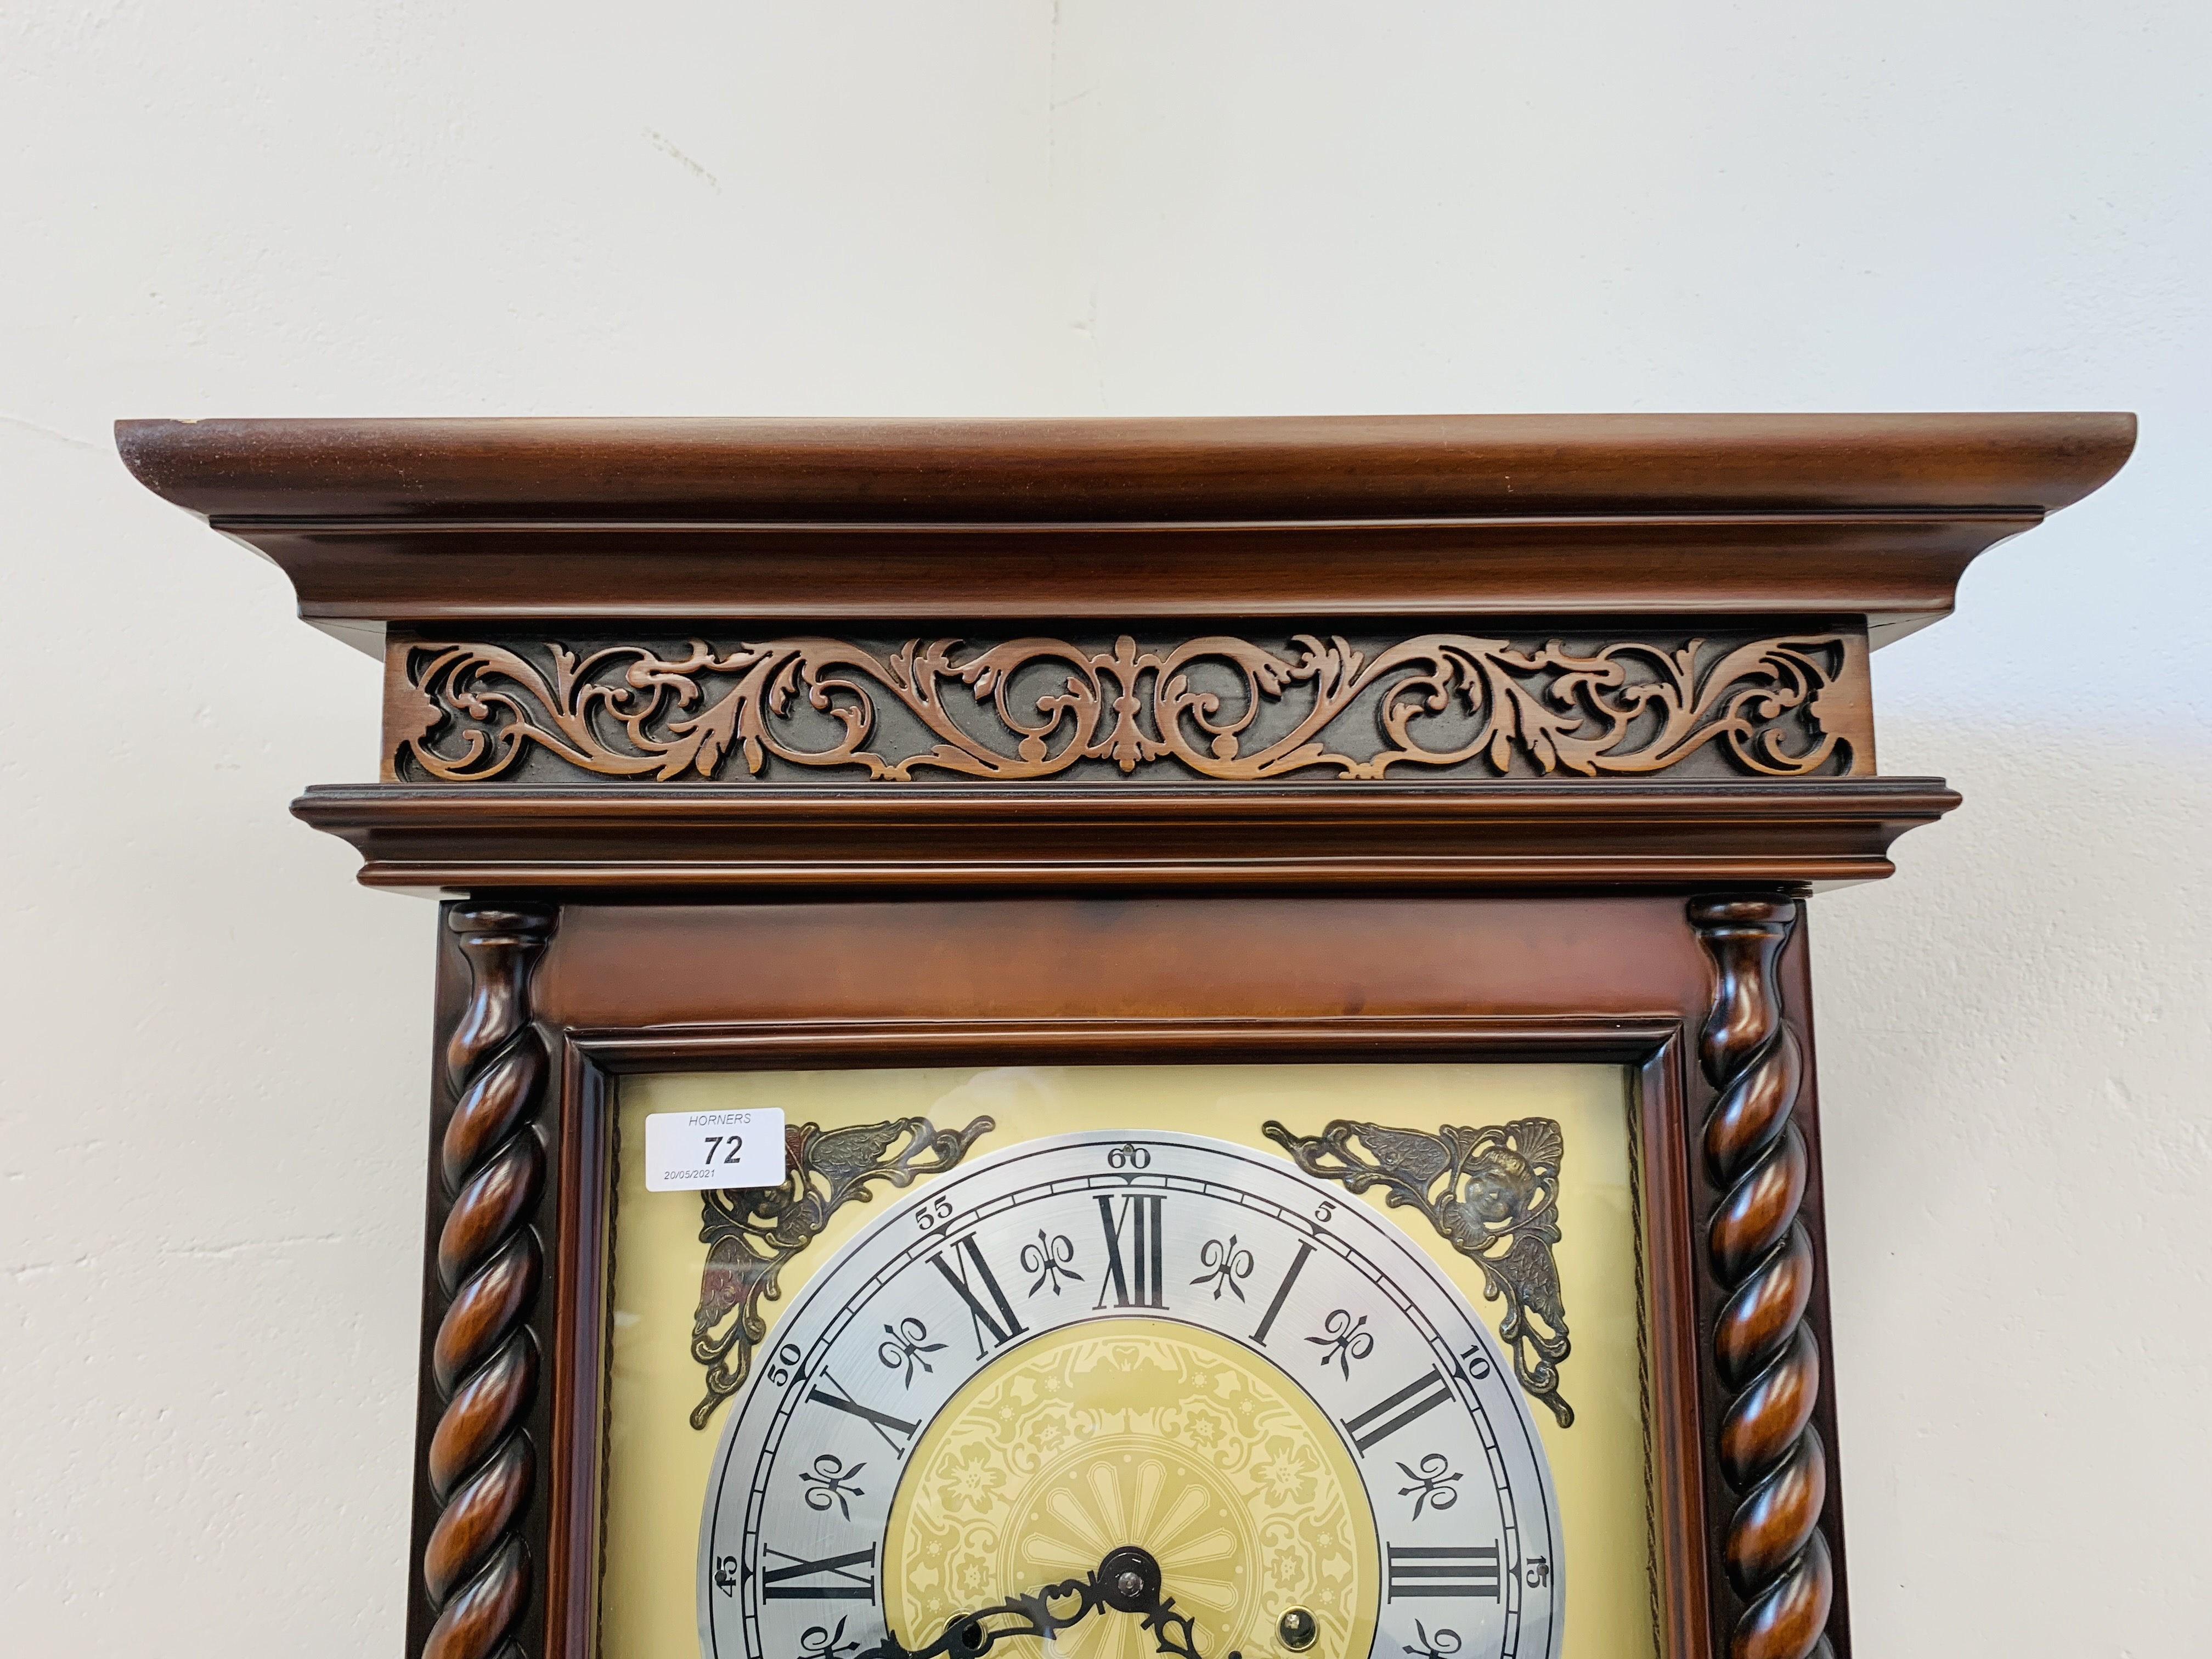 A GOOD QUALITY REPRODUCTION LONG CASE CLOCK - WESTMINSTER CHIME - SOLD AS SEEN - Image 18 of 19